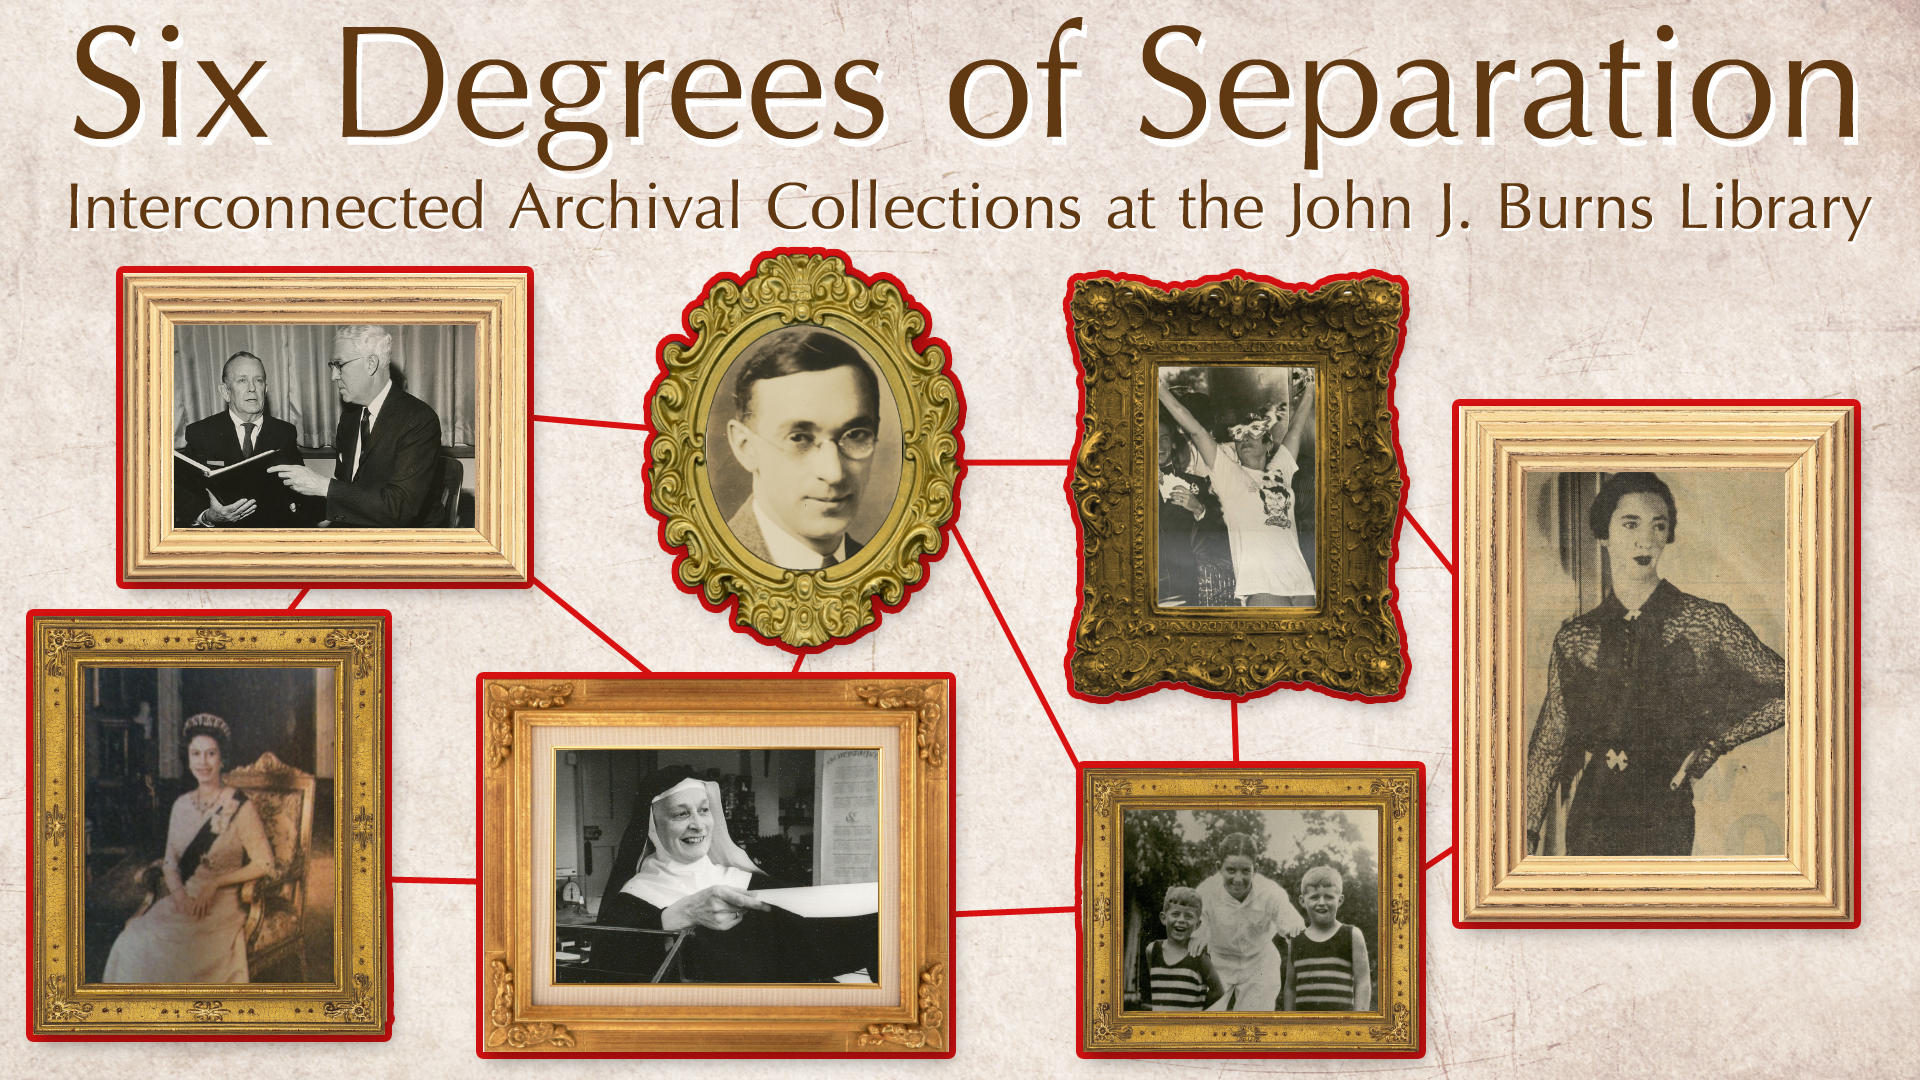 Six degrees of separation game examples